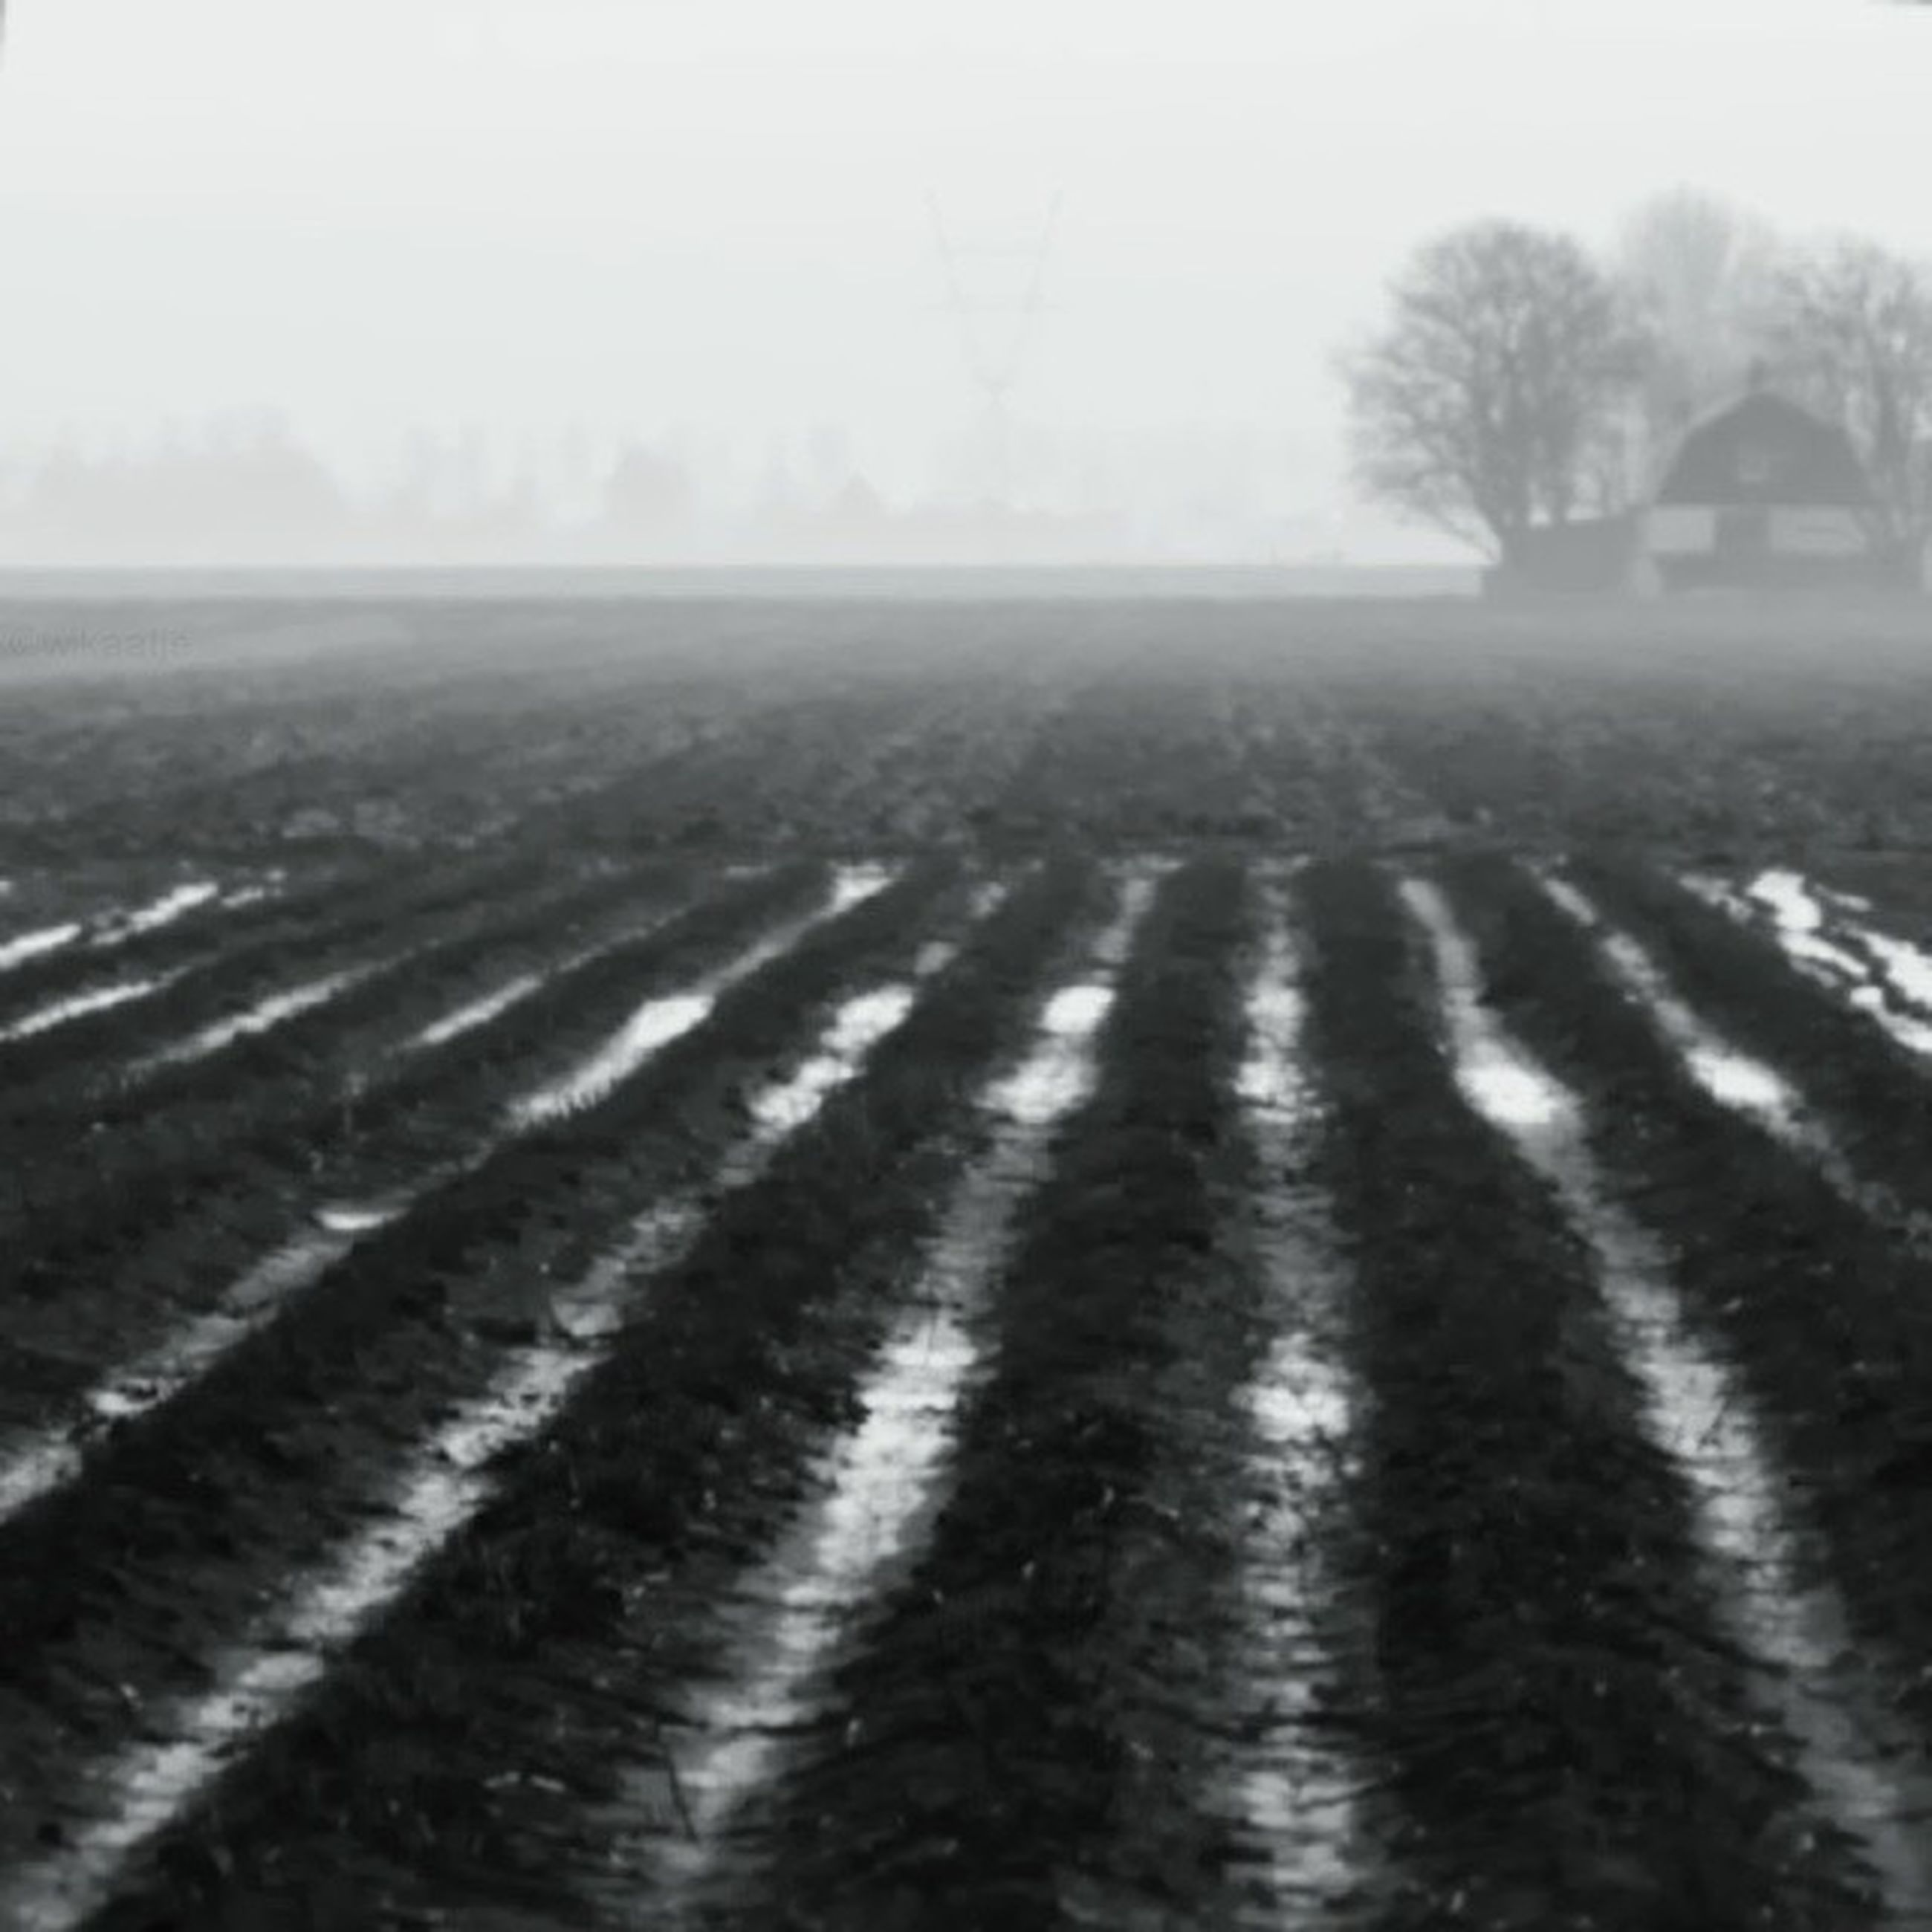 landscape, field, tranquil scene, tranquility, clear sky, agriculture, rural scene, nature, scenics, beauty in nature, farm, tree, weather, day, foggy, sky, outdoors, copy space, no people